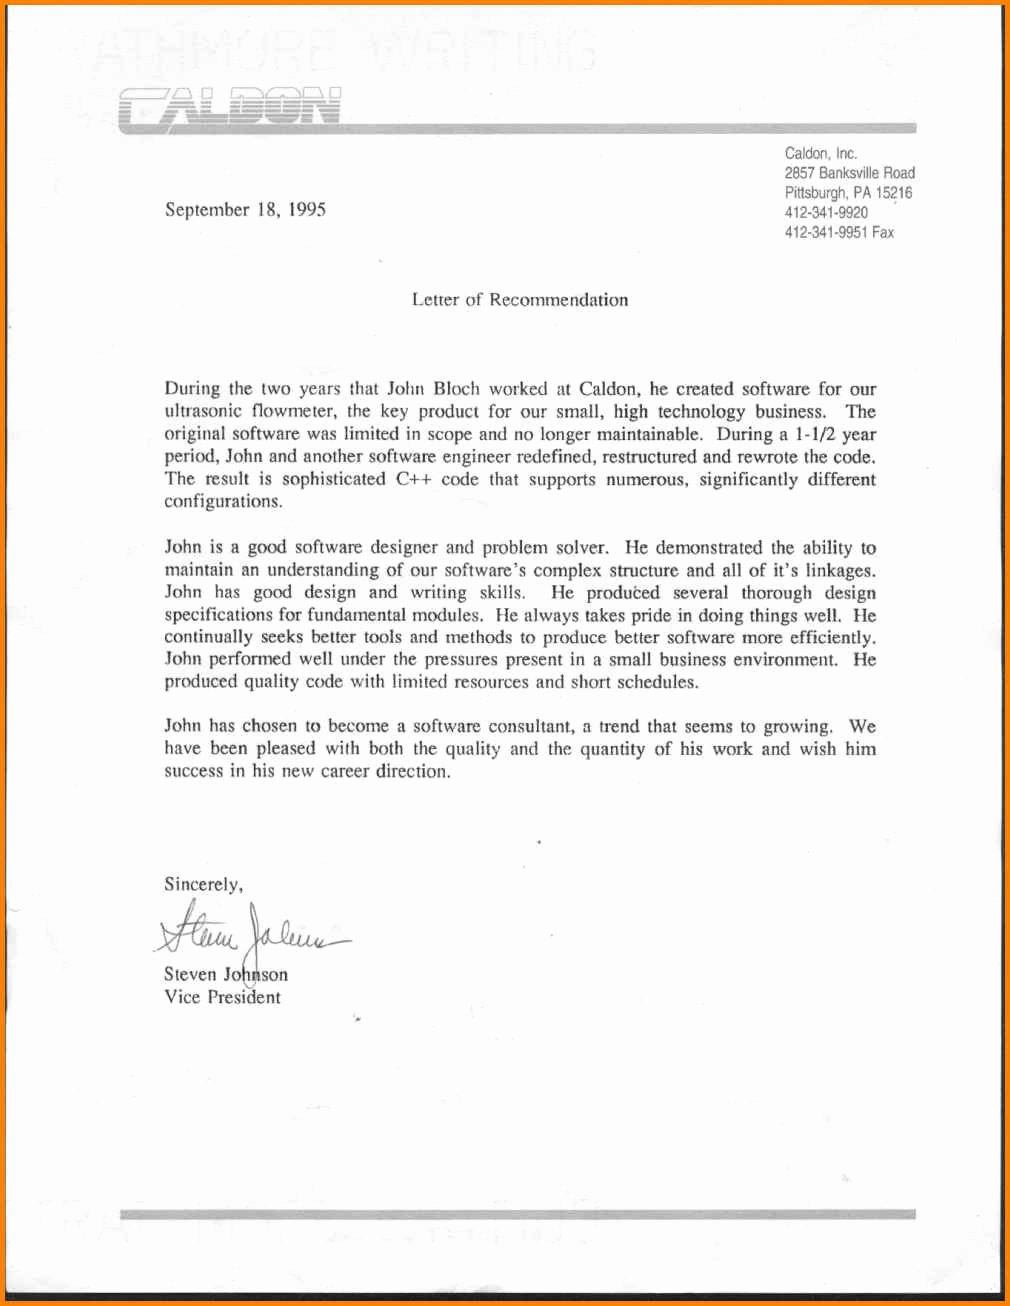 Eagle Scout Recommendation Letter Template Unique How to Get An Eagle Scout Letter From the President Best